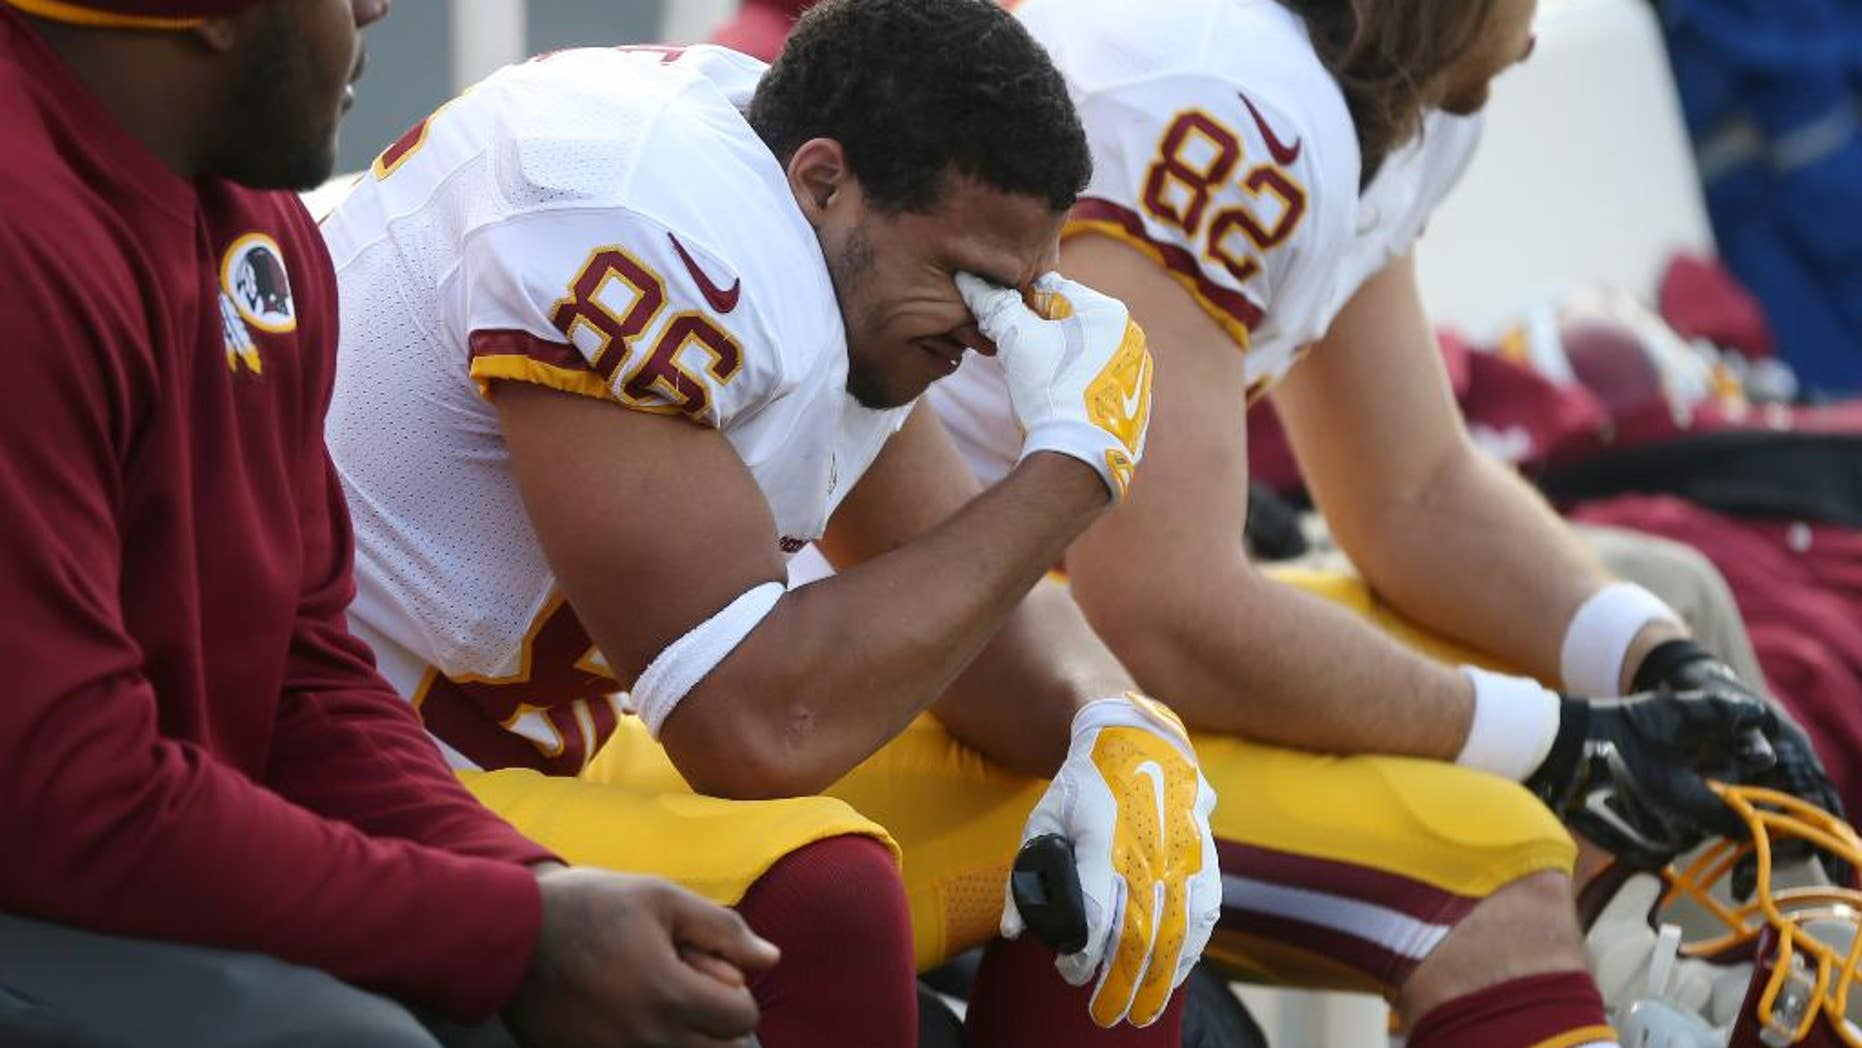 Washington Redskins tight end Jordan Reed reacts on the sidelines at the end of an NFL football game against the Minnesota Vikings, Sunday, Nov. 2, 2014, in Minneapolis. The Vikings won 29-26. (AP Photo/Jim Mone)